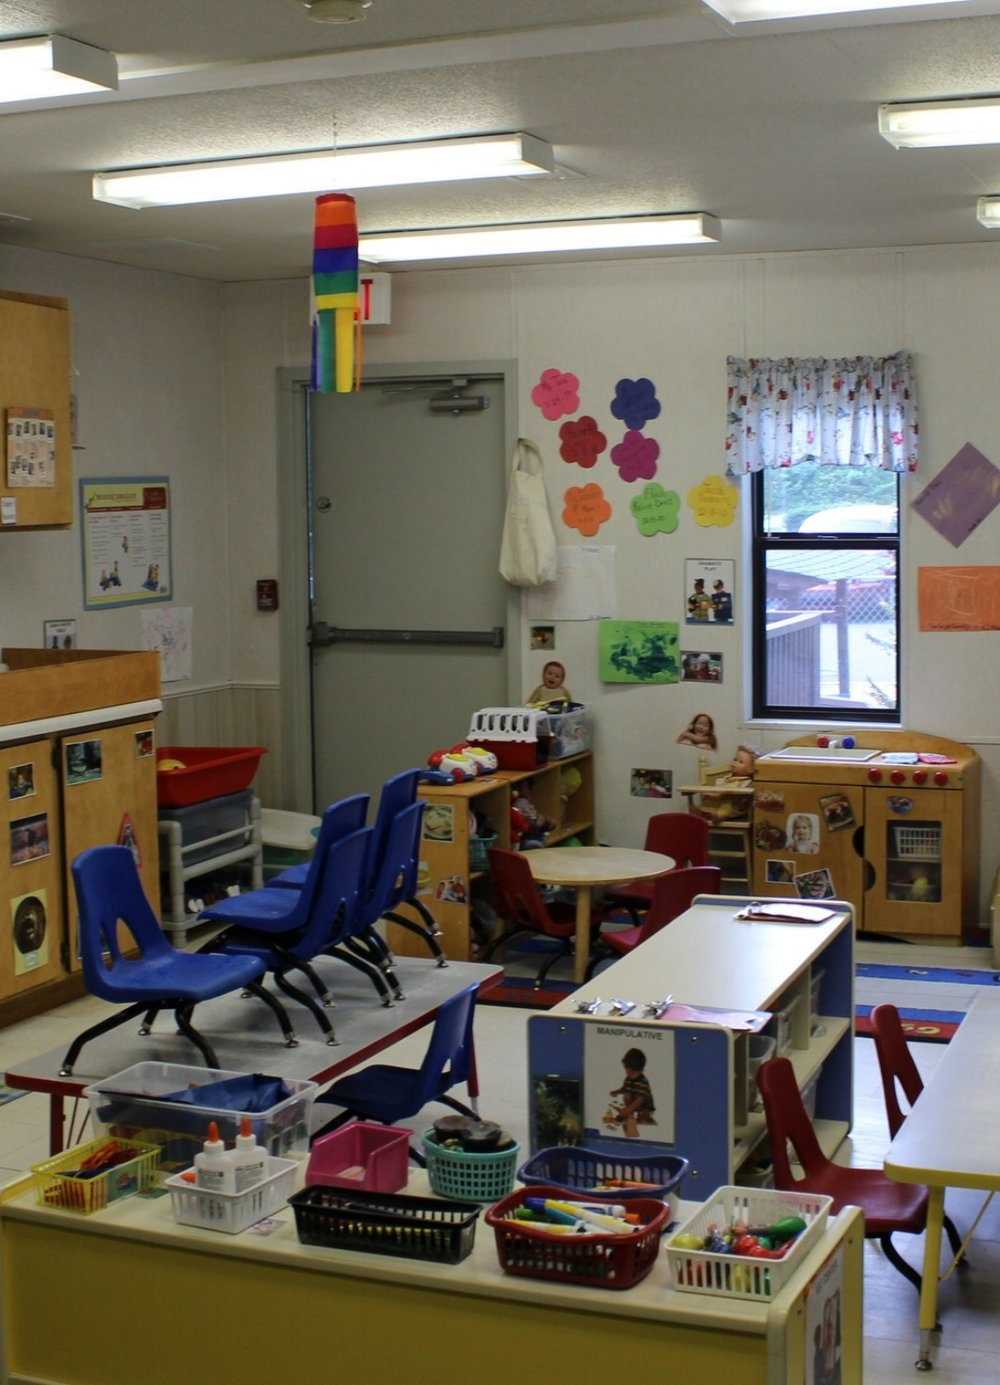 Two's Room - Tiny Treasures CDC uses The Creative Curriculum in our Two Year Old classroom. The classroom is divided into centers and learning areas. The children have access to the following learning centers daily: Books, Dramatic Play, Blocks, Art, Sand and Water, Manipulatives, Music and Movement and Outdoors.The children are introduced to colors, shapes, letters and numbers through appropriate activities and games.